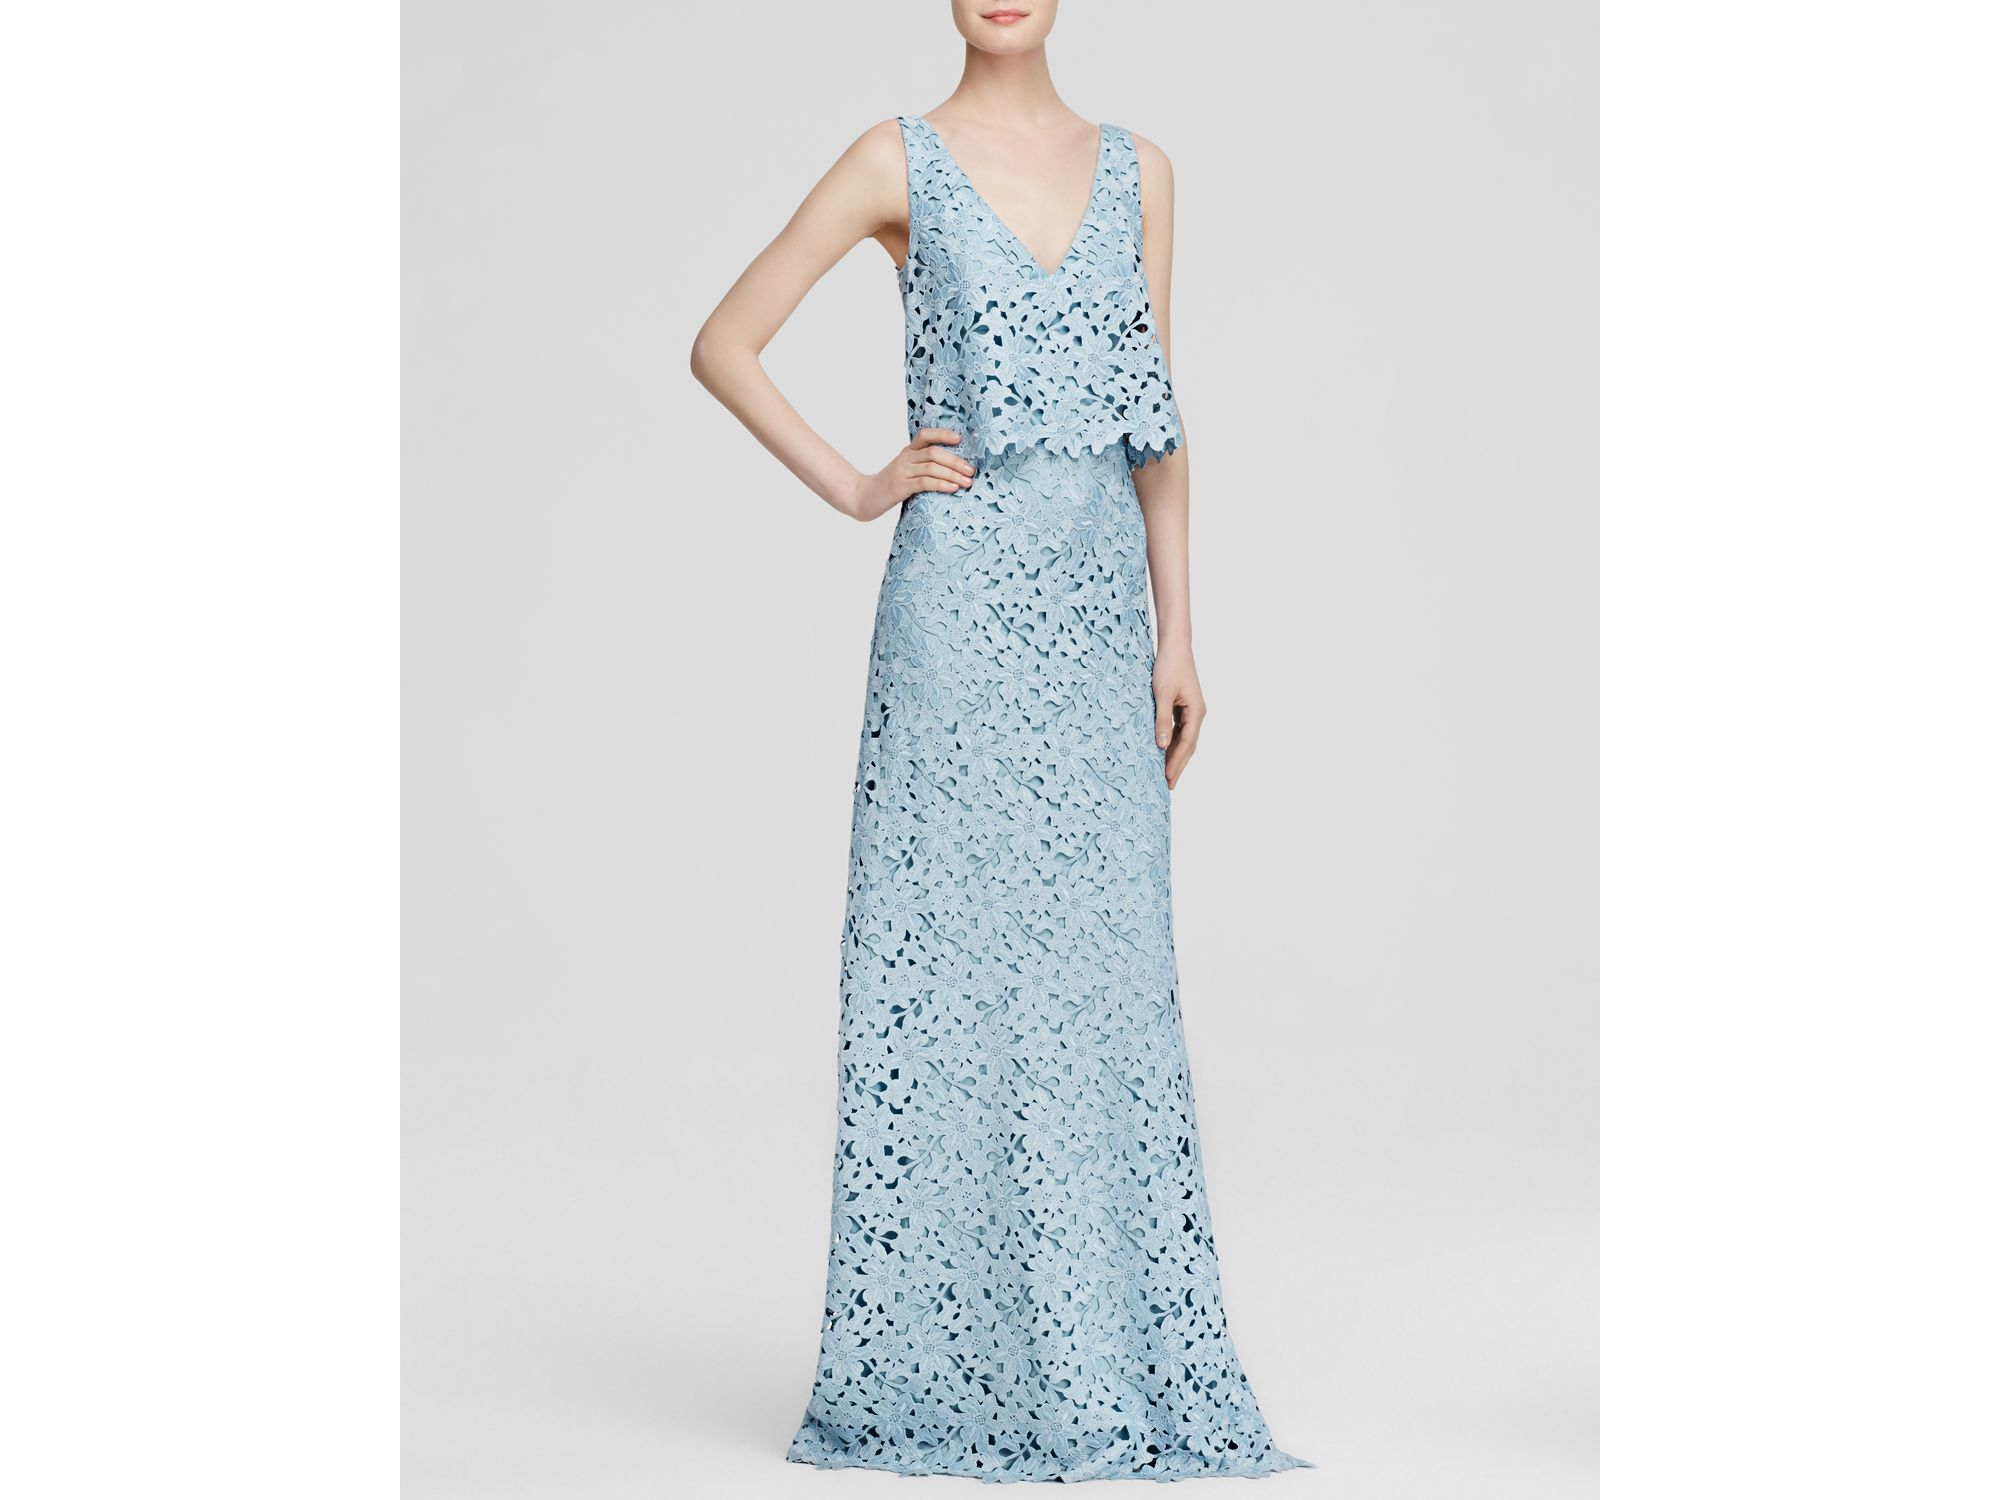 Lyst - Vera Wang Gown - Sleeveless Chemical Lace Bodice Overlay in Blue